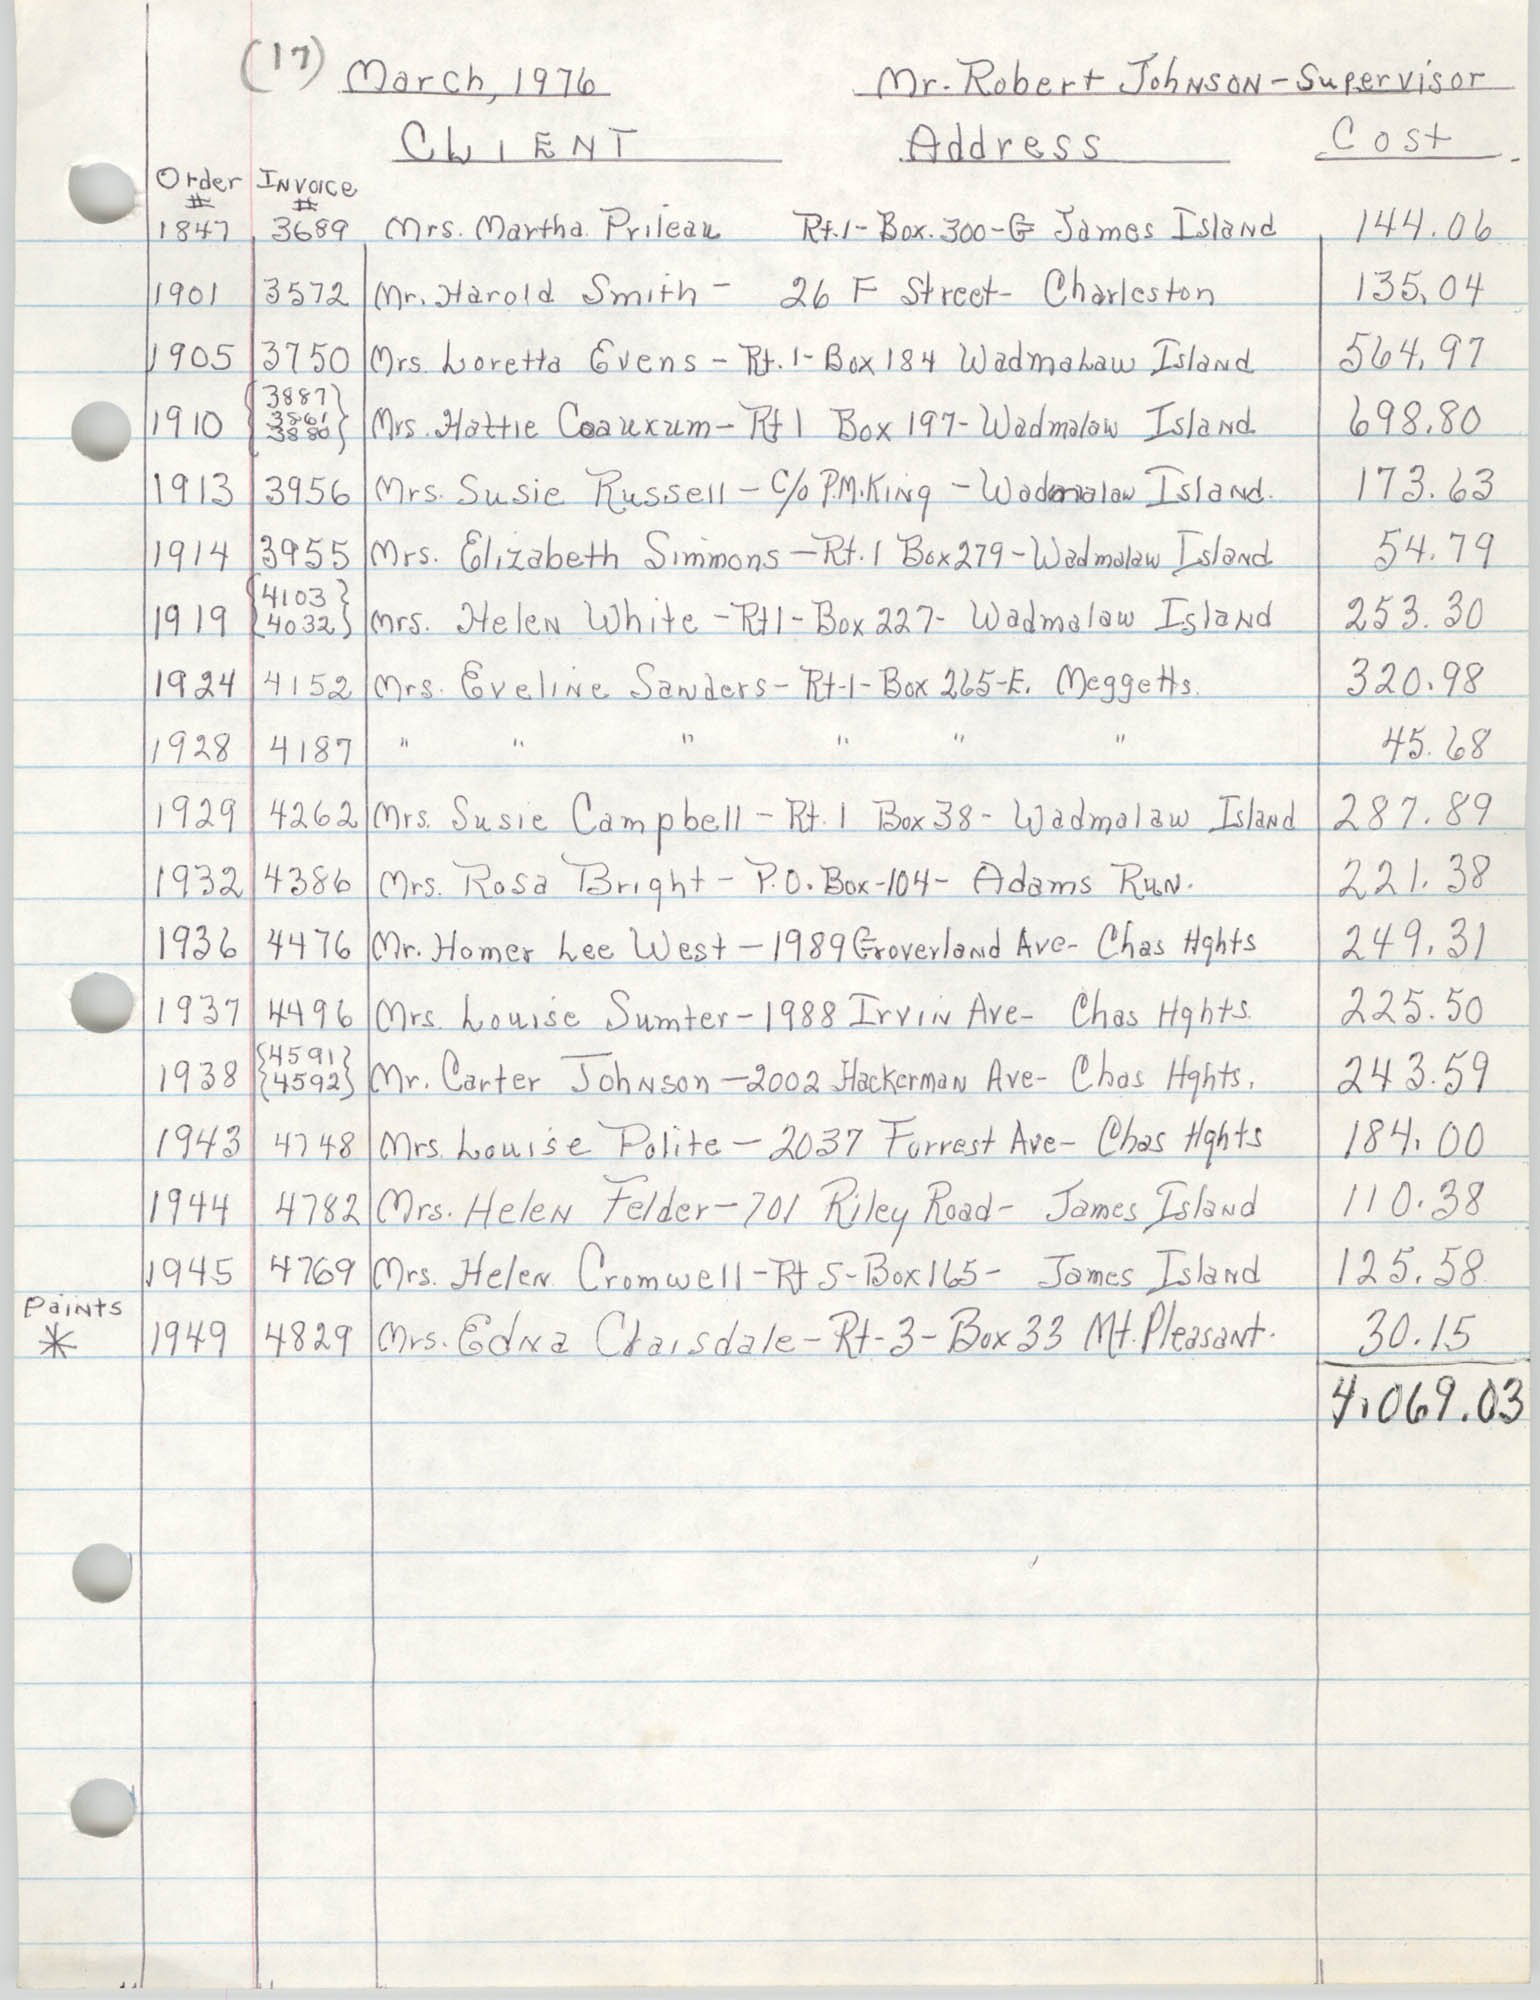 COBRA Chore Services, March 1976, Client List